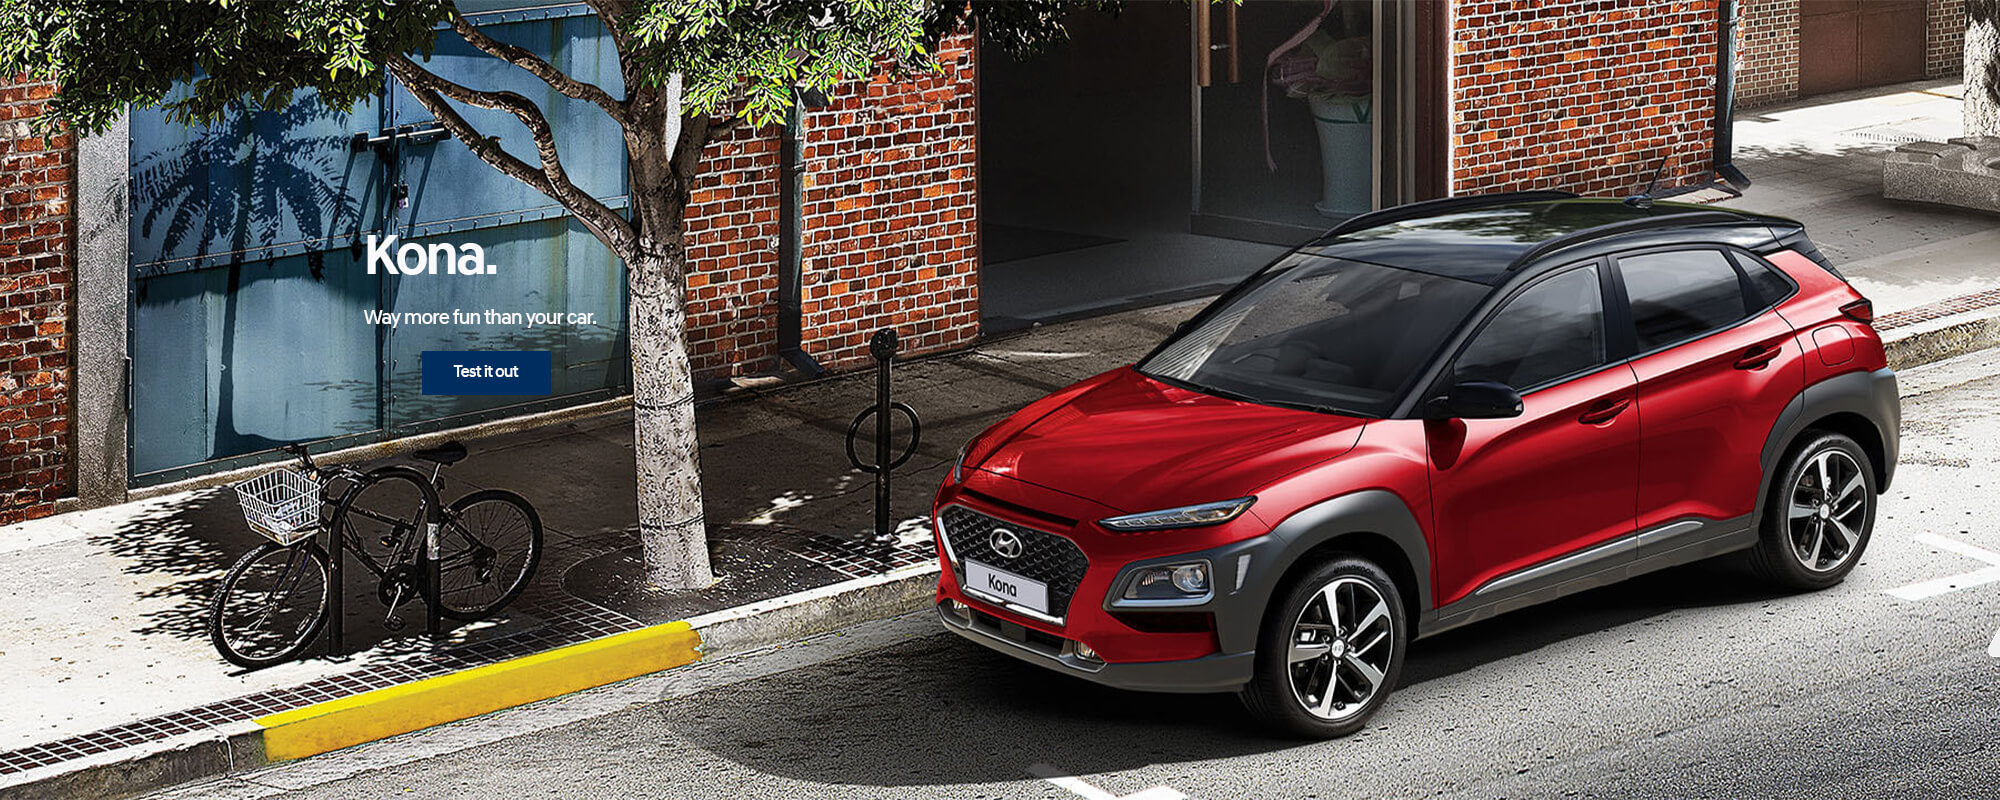 Hyundai Kona. Way more fun than your car. Book a test drive today.